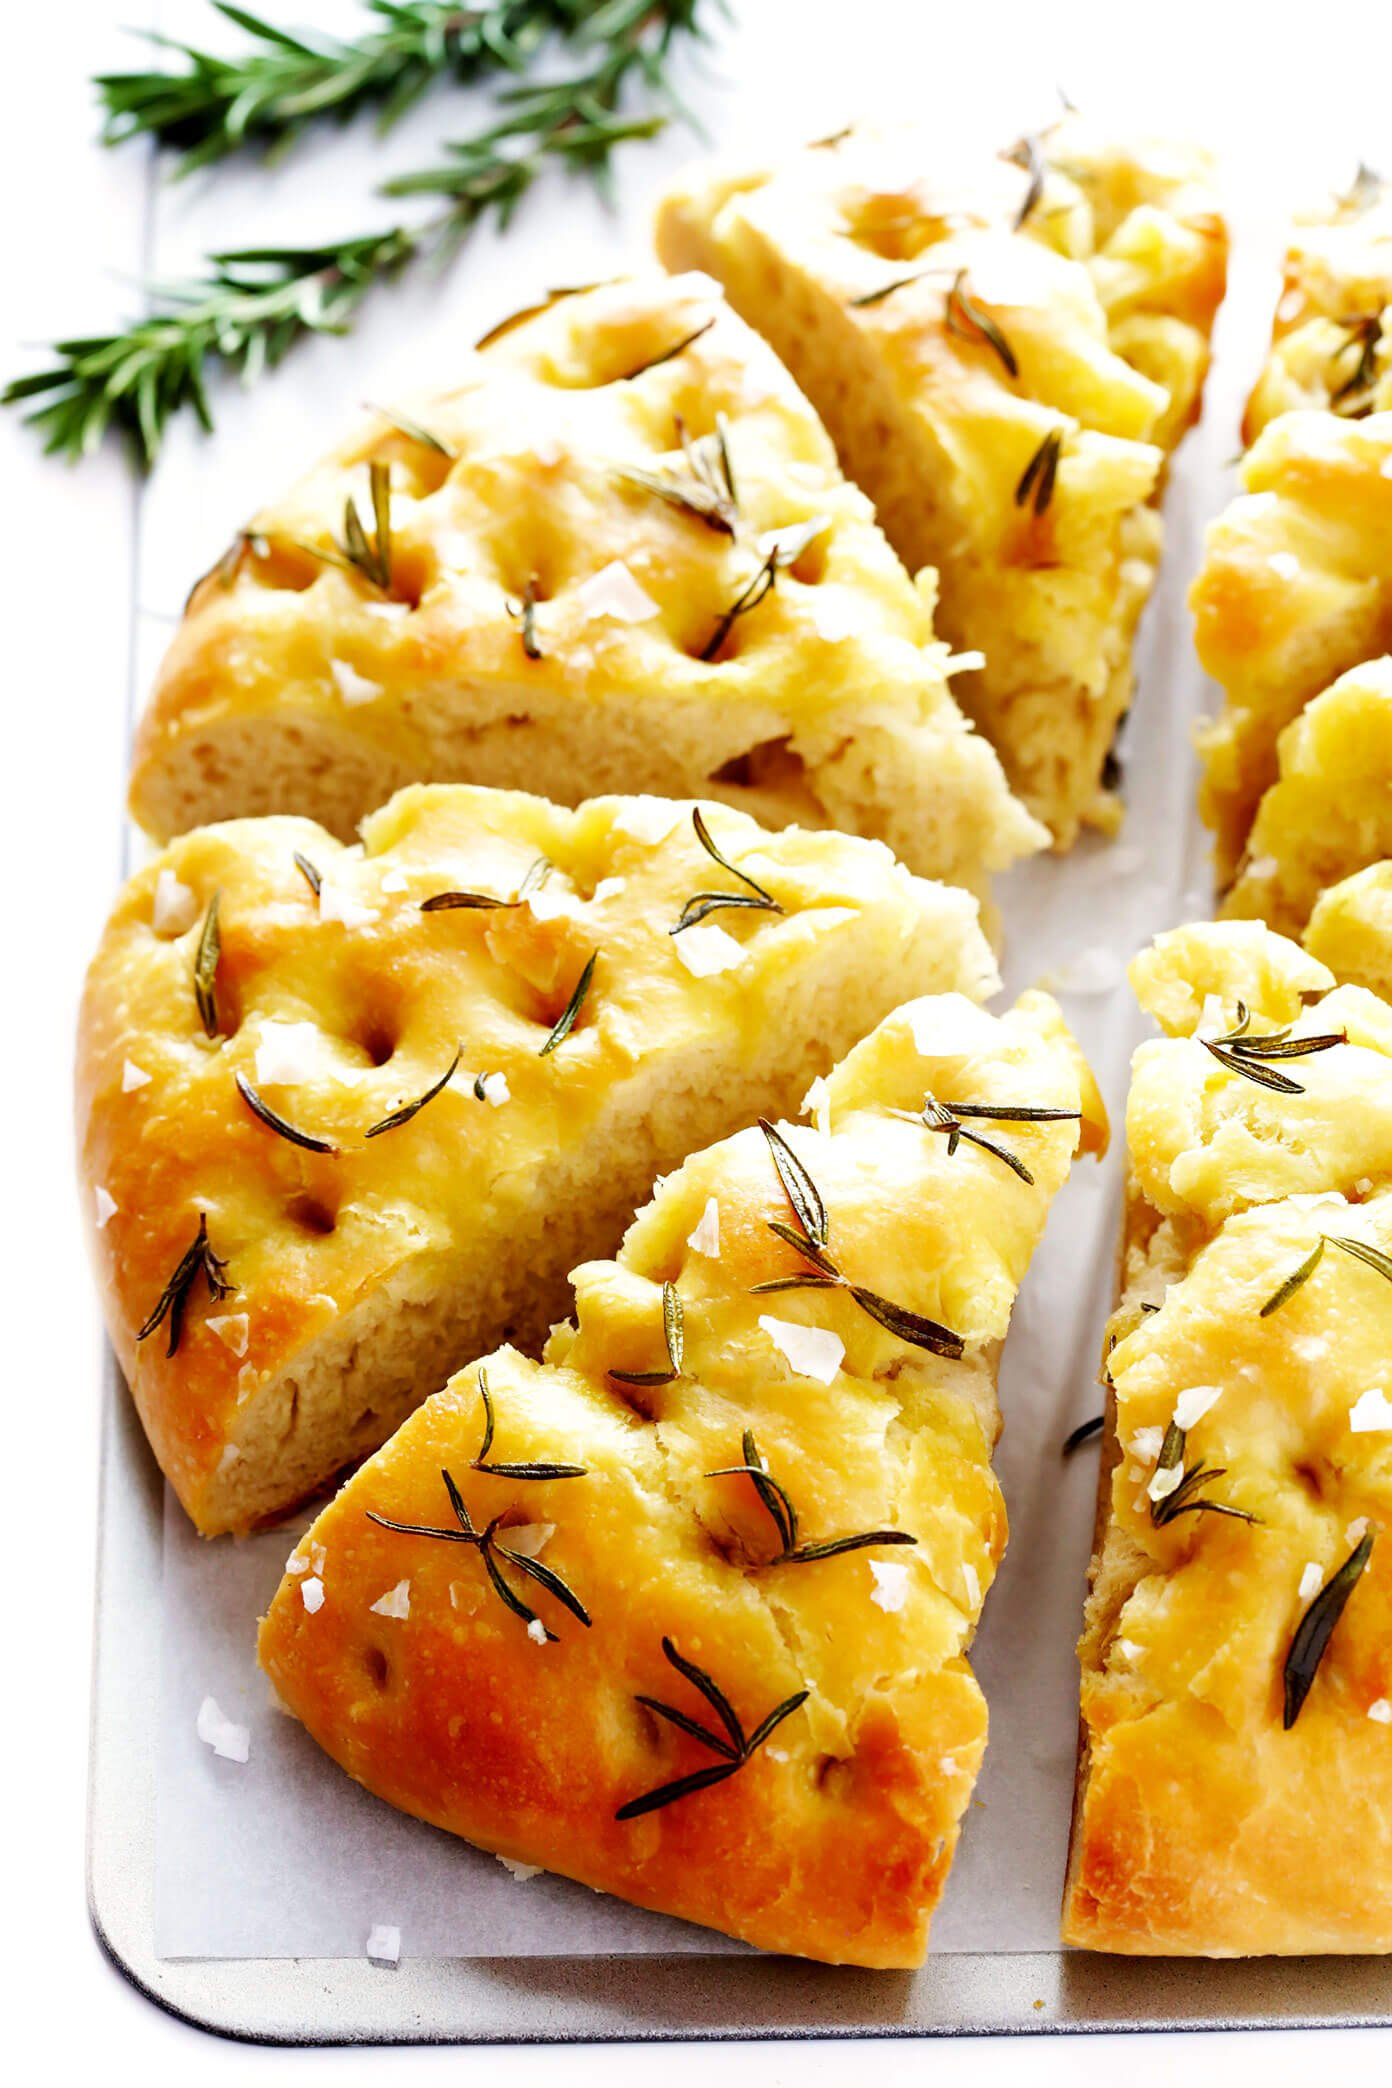 Rosemary Focaccia Bread Recipe Gimme Some Oven